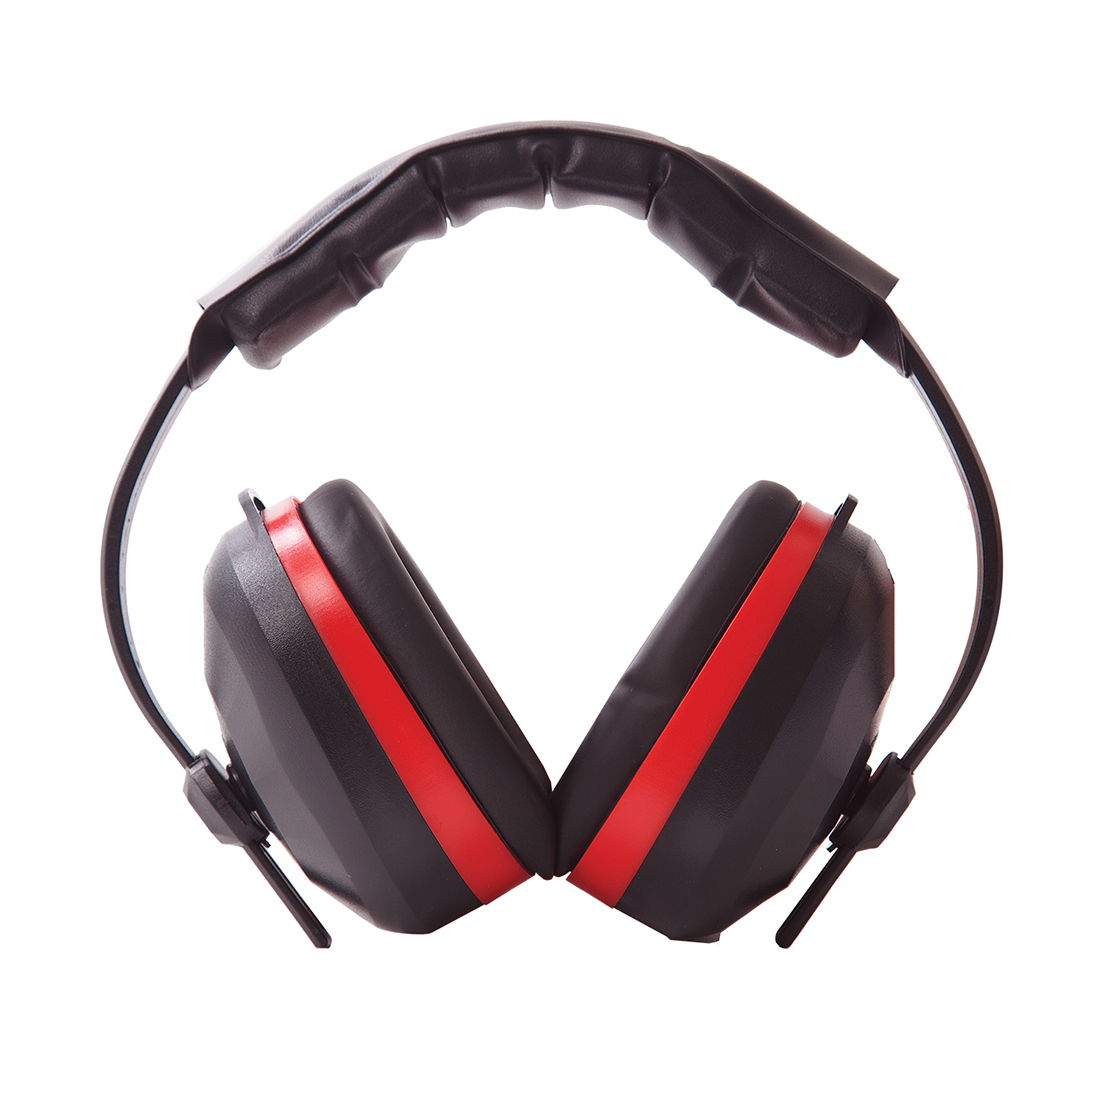 Hearing Protection, Ear Muffs